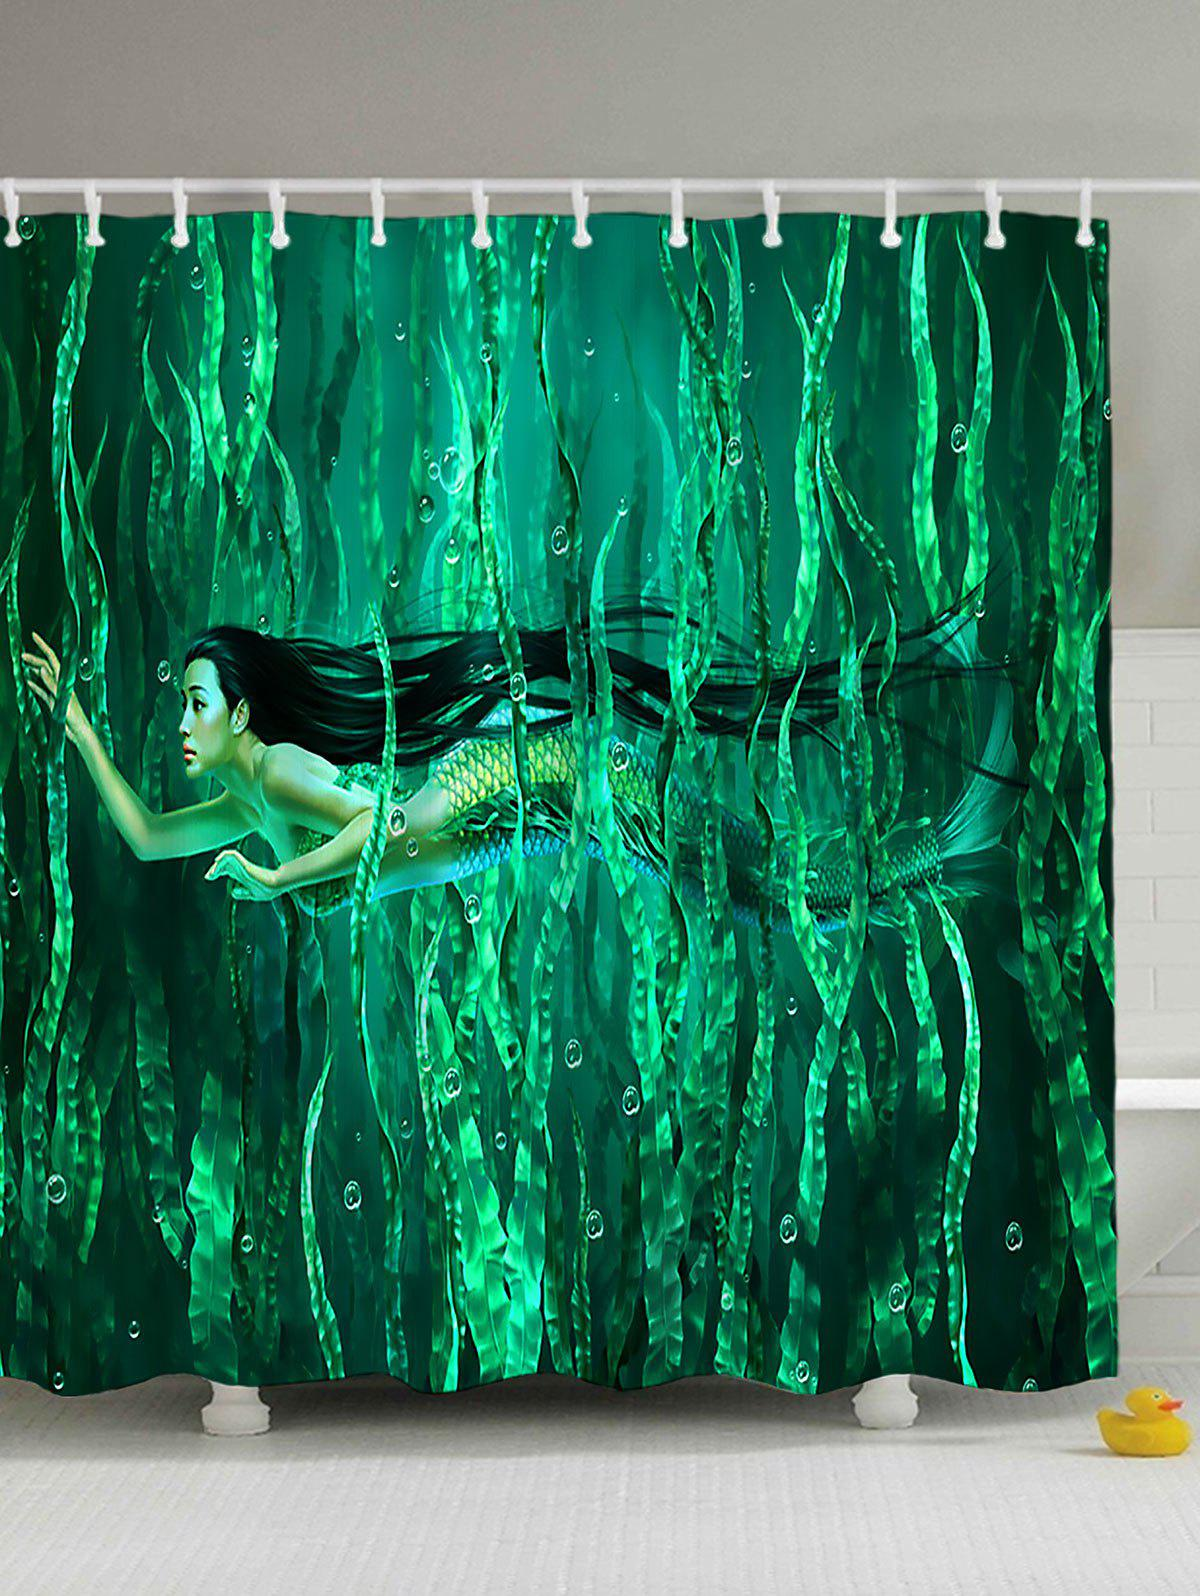 Seabed Mermaid Waterproof Shower Curtain sequins mermaid waterproof polyester shower curtain with hooks